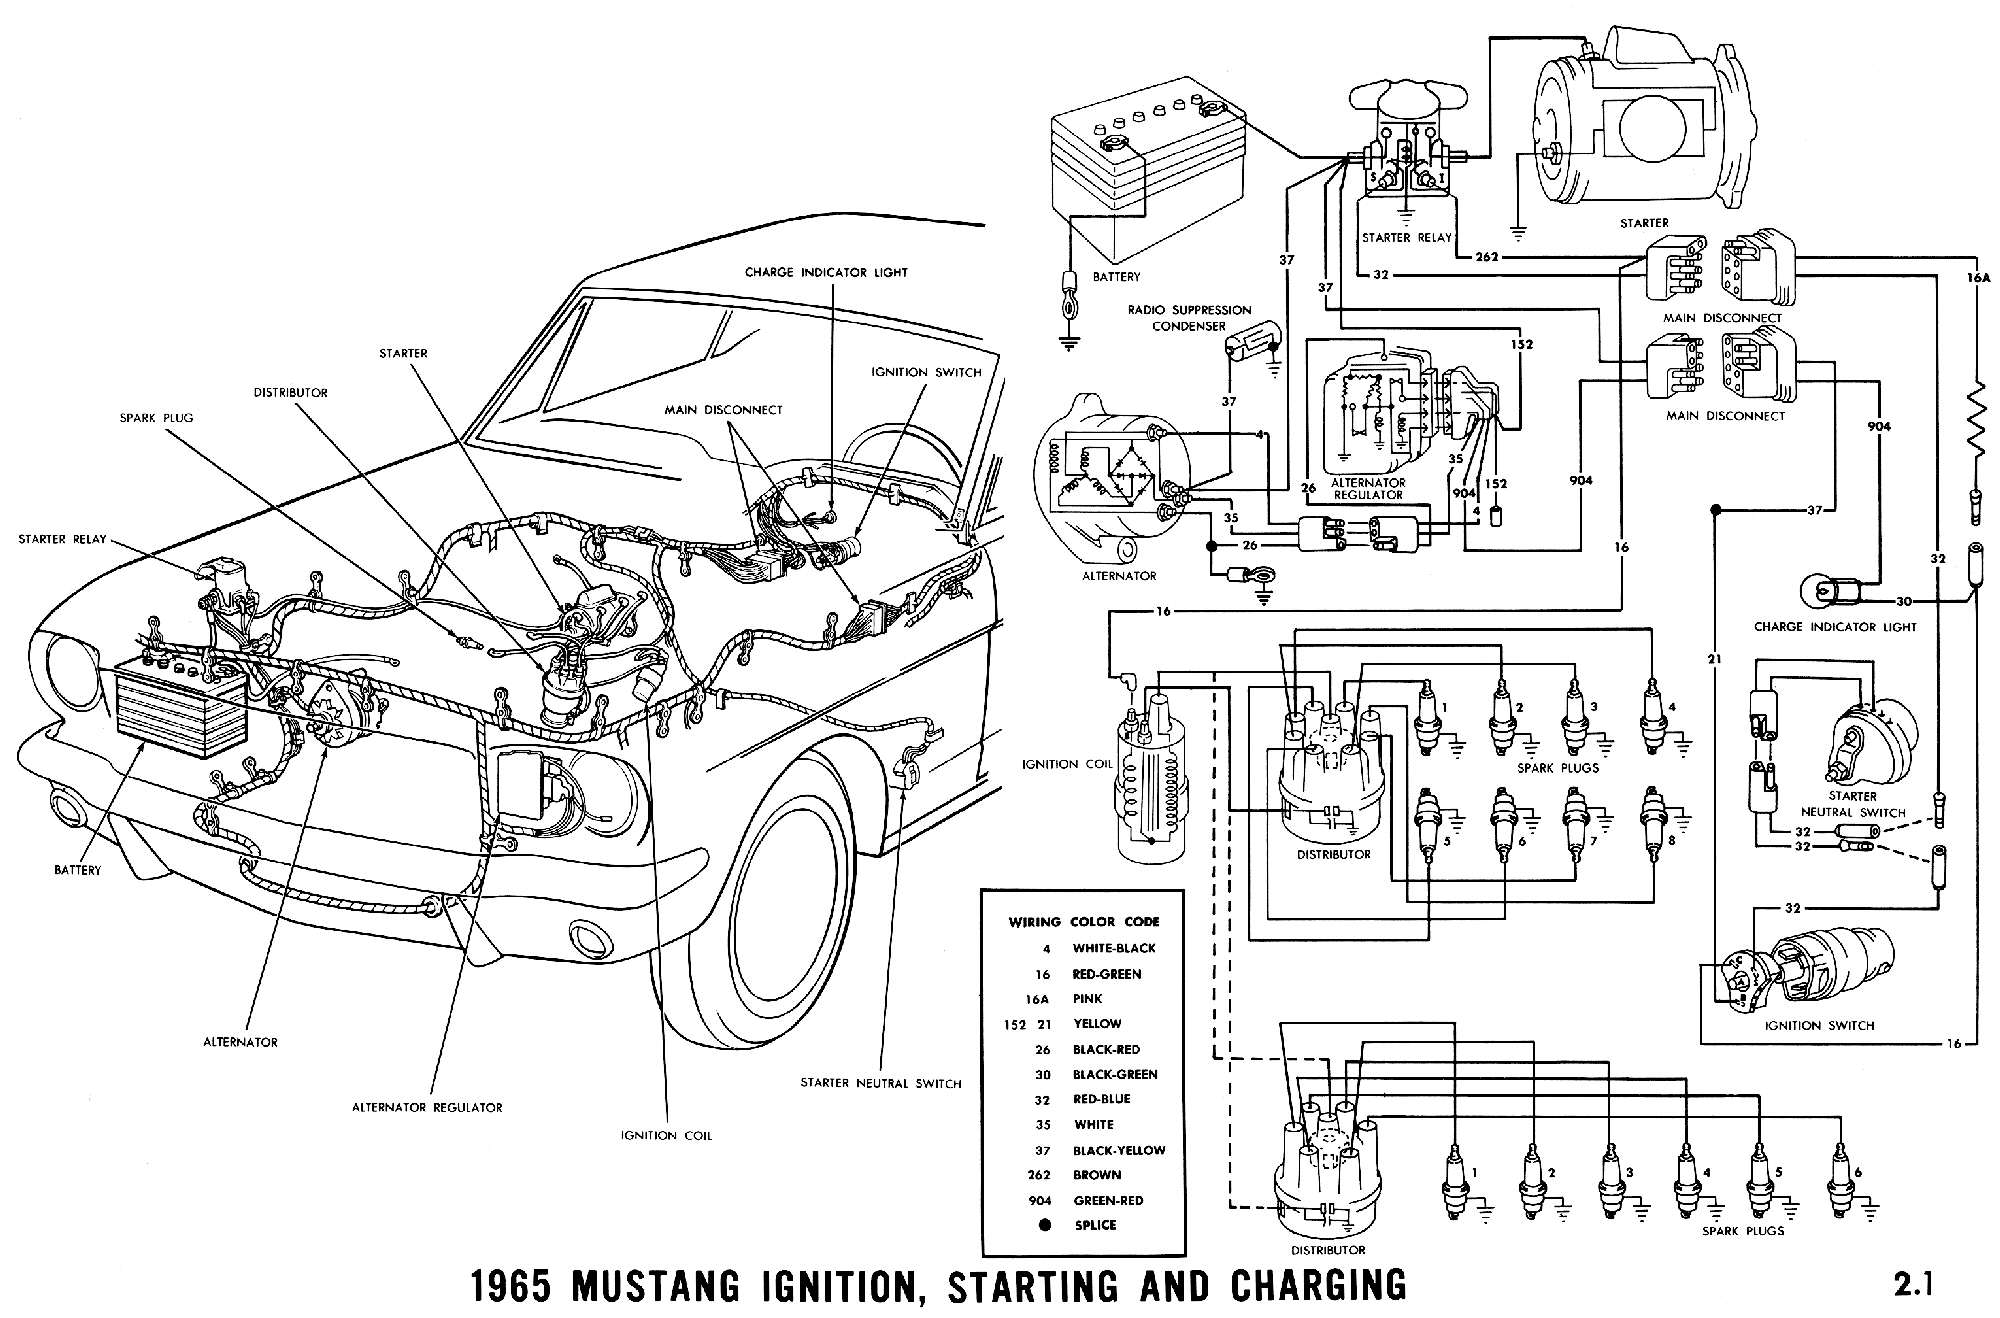 Voltage Regulator Wiring Diagram 1965 Opinions About 4 Wire Mustang Detailed Schematics Rh Mrskindsclass Com Alternator Schematic With